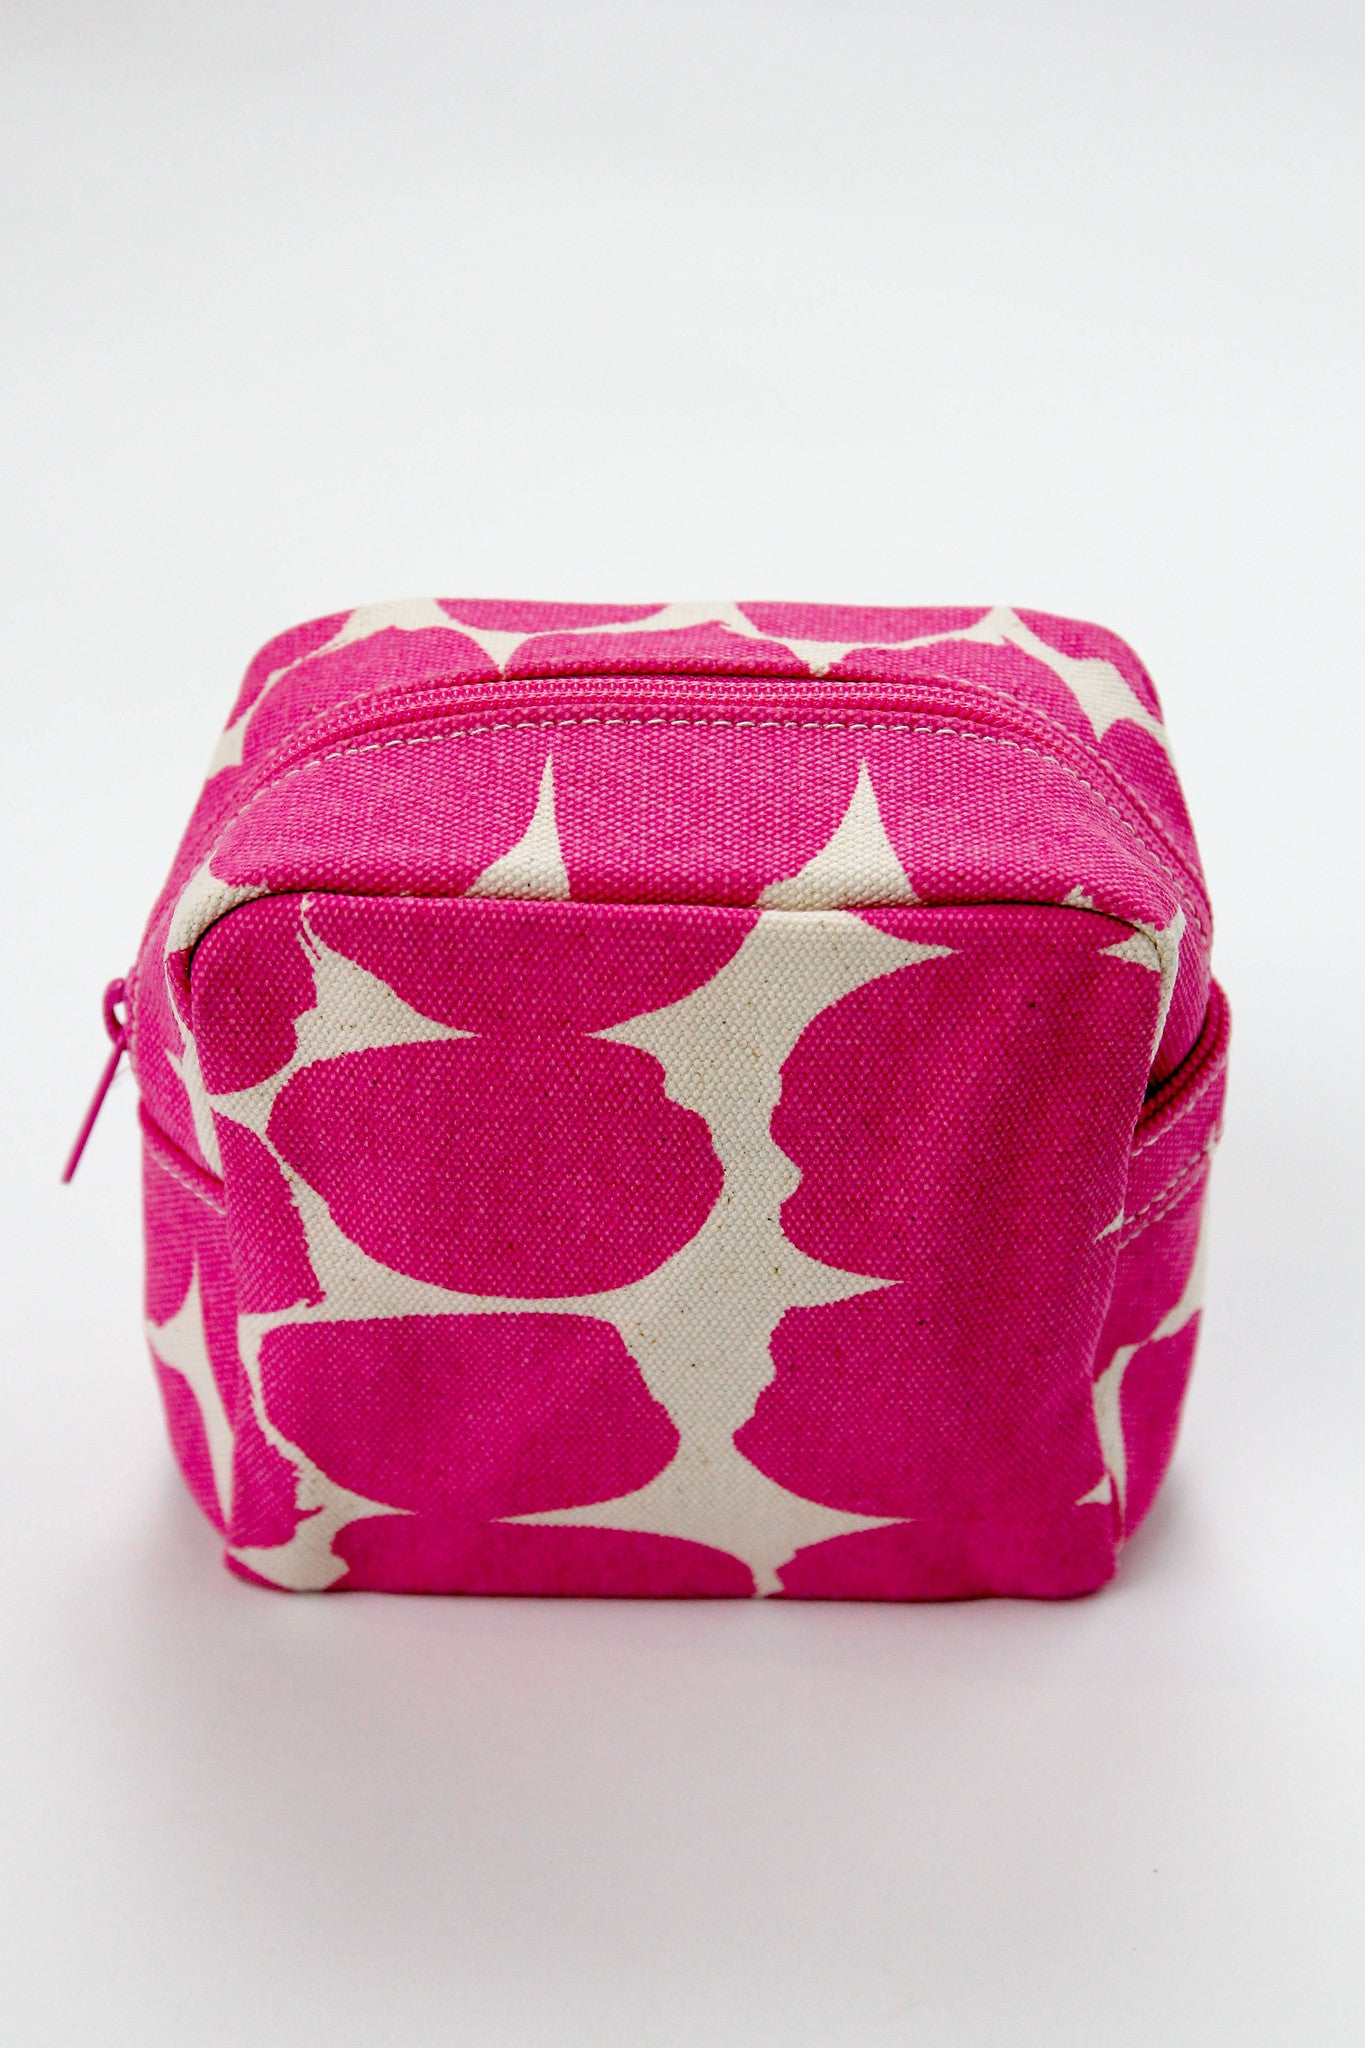 Small Cosmetic Bag - Big Smudge Pink